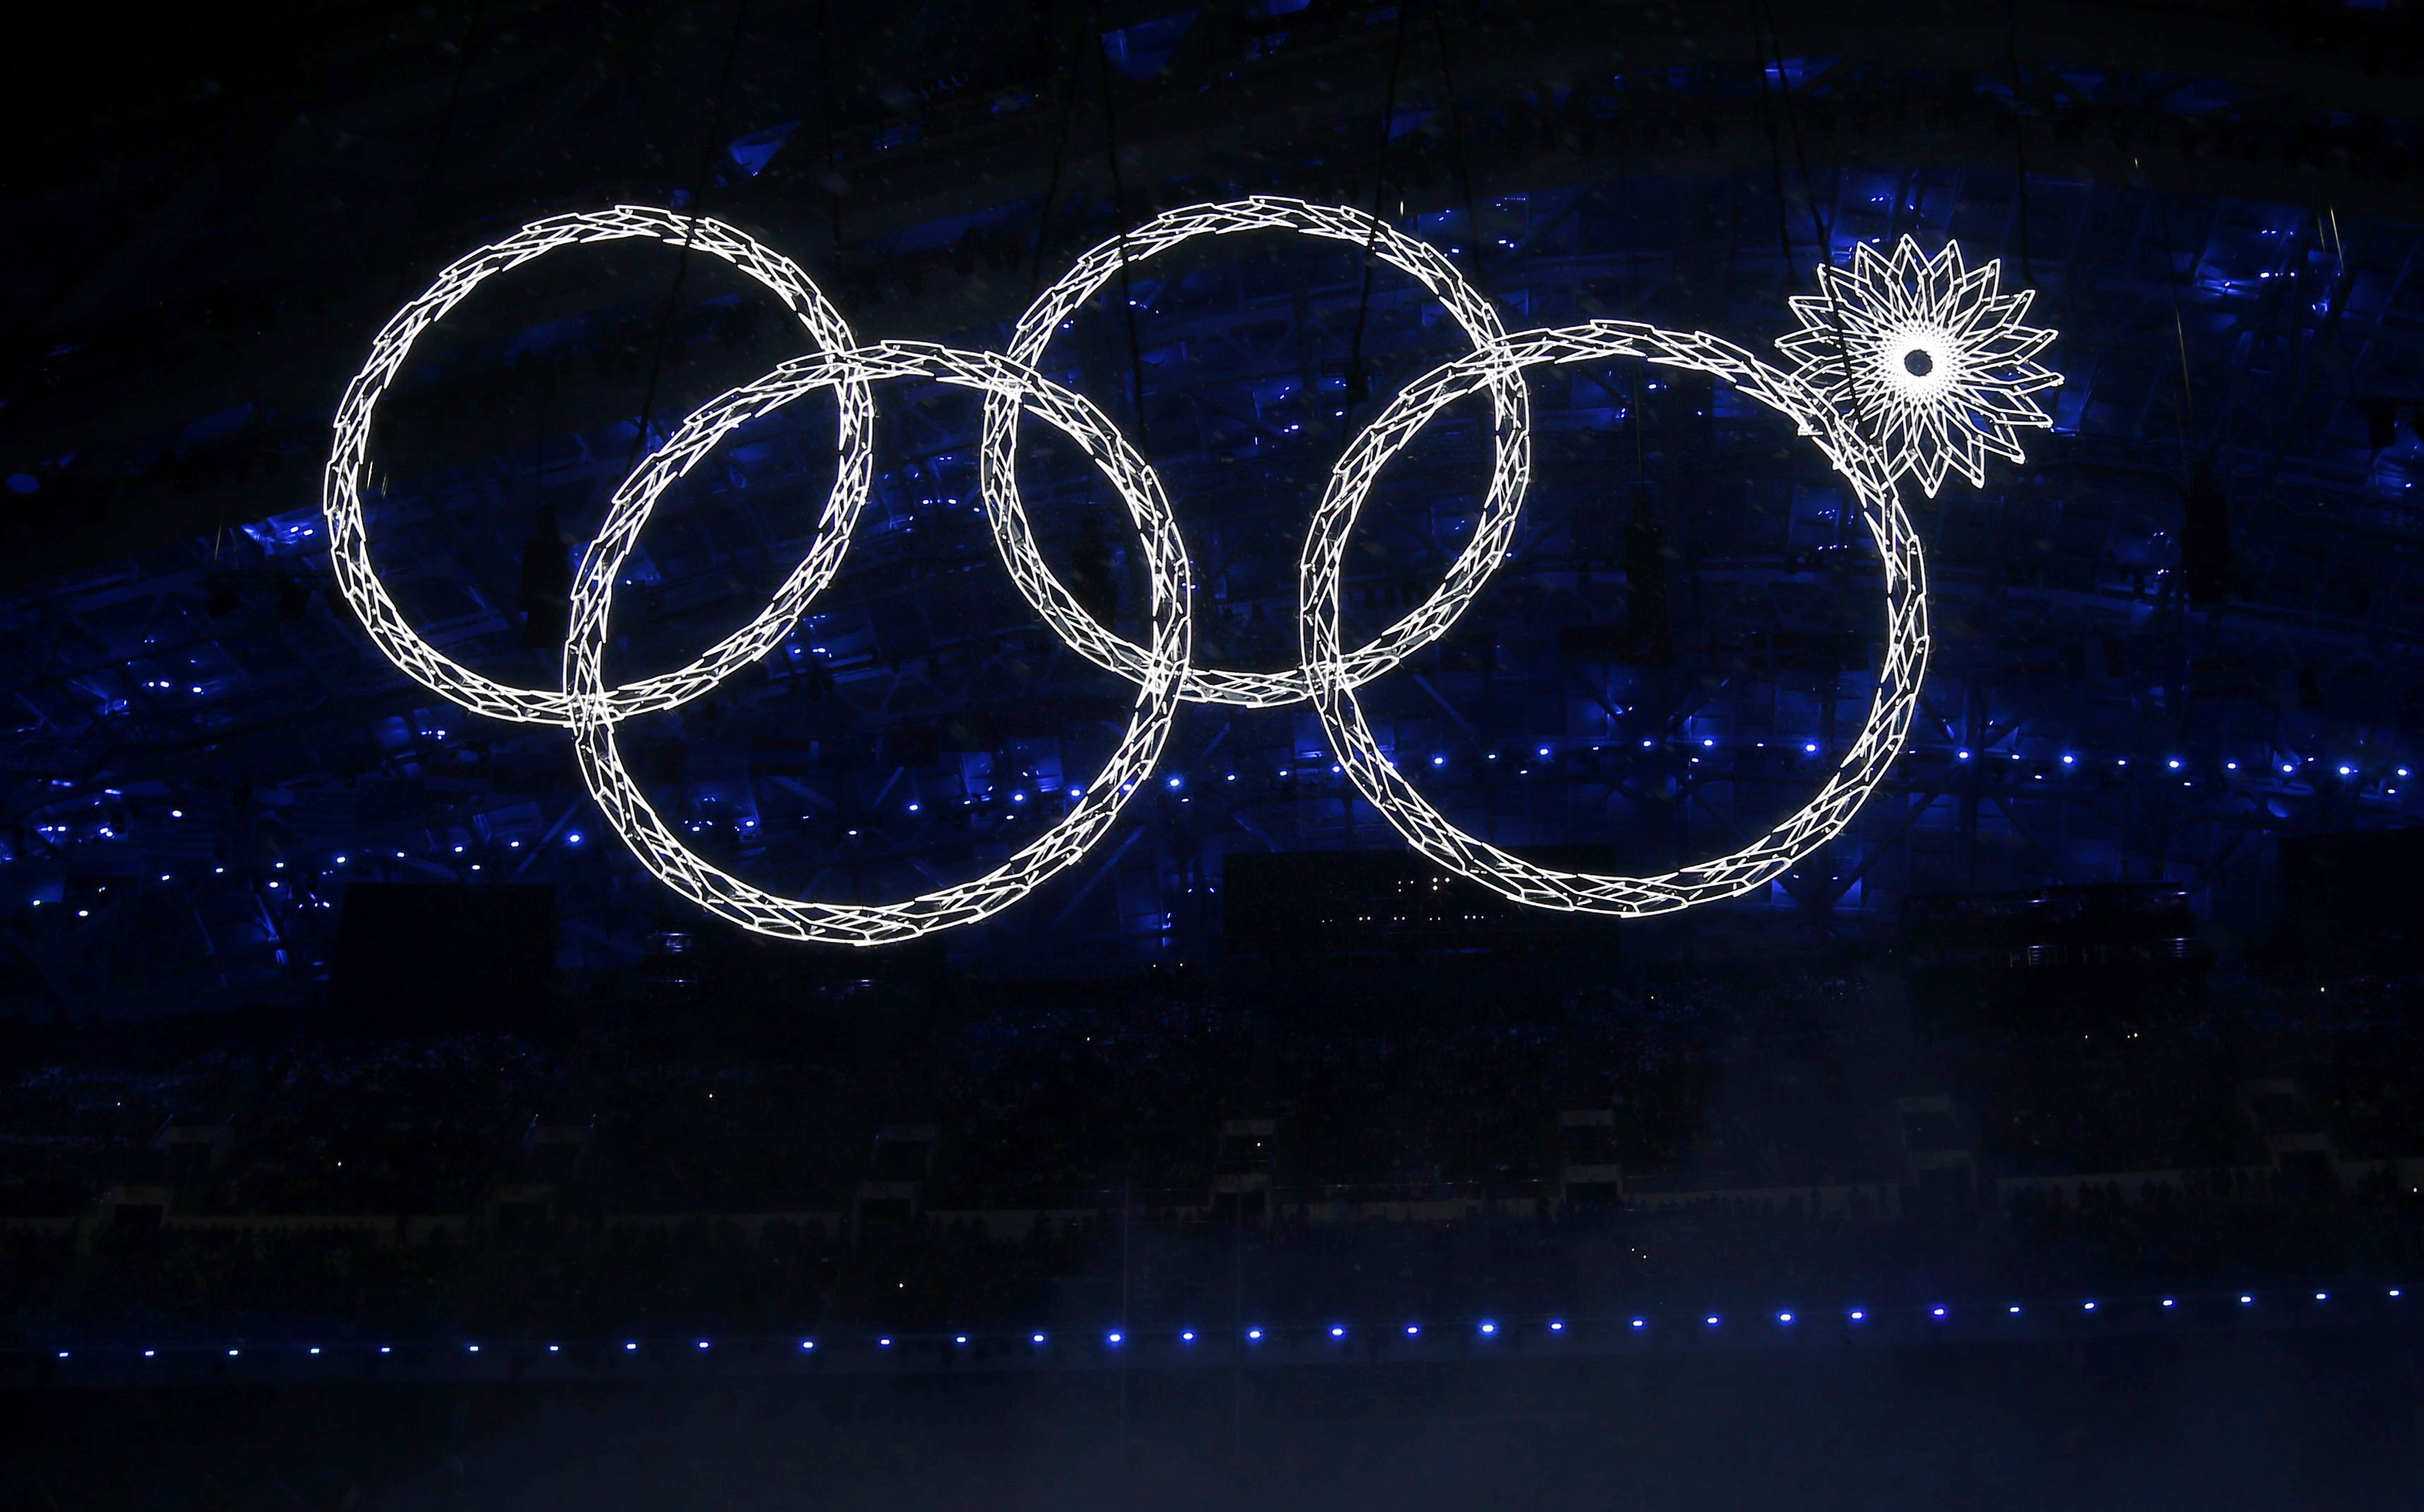 The Olympic rings are seen during the opening ceremony of the 2014 Sochi Winter Olympics, February 7, 2014. REUTERS/Brian Snyder (RUSSIA - Tags: OLYMPICS SPORT)